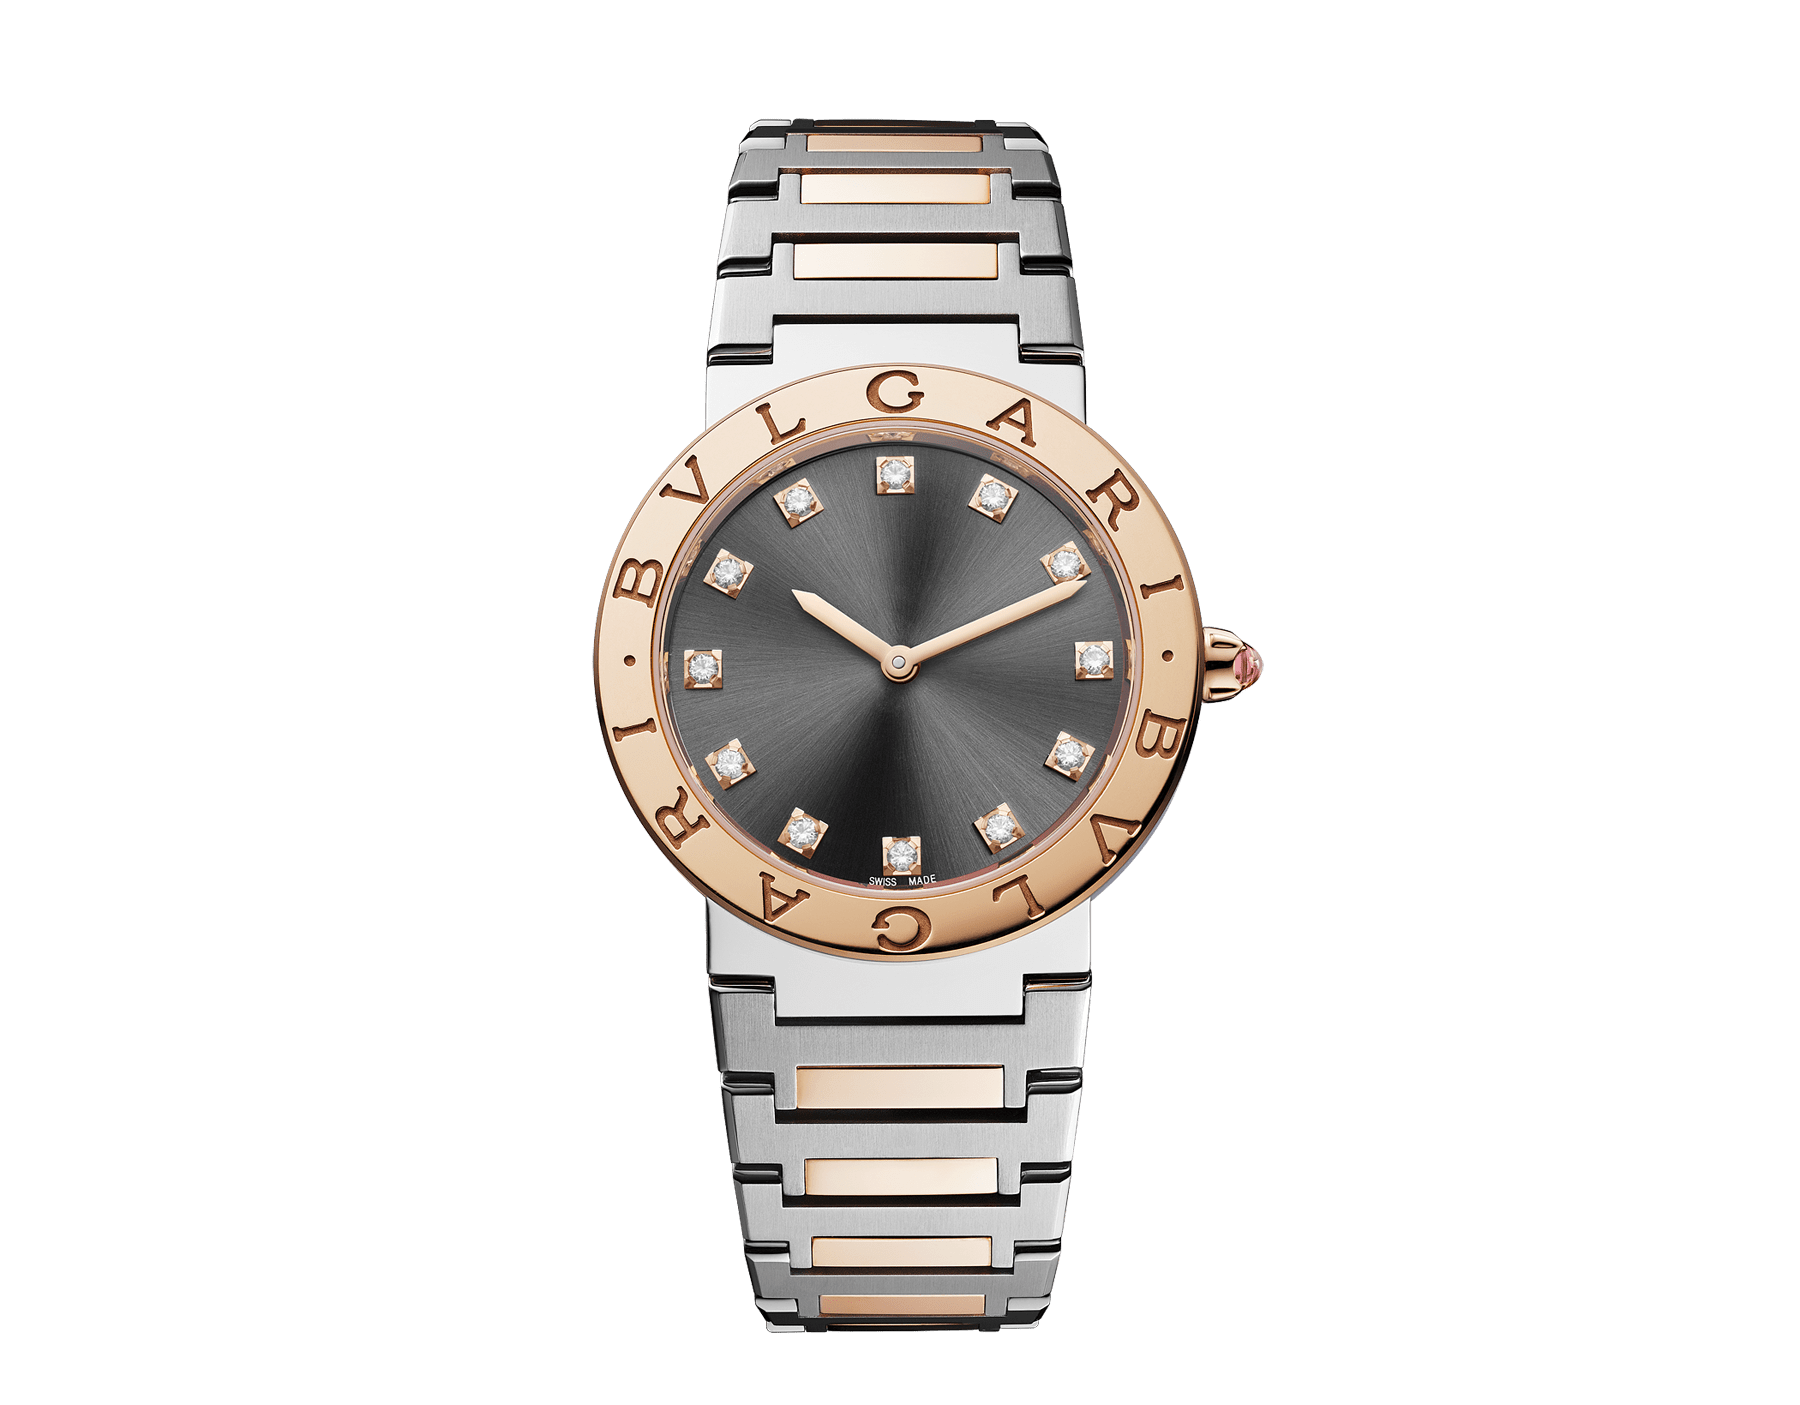 BVLGARI BVLGARI LADY watch with stainless steel case, 18 kt rose gold bezel engraved with double logo, grey lacquered dial, diamond indexes, and stainless steel and 18 kt rose gold bracelet. 103067 image 1